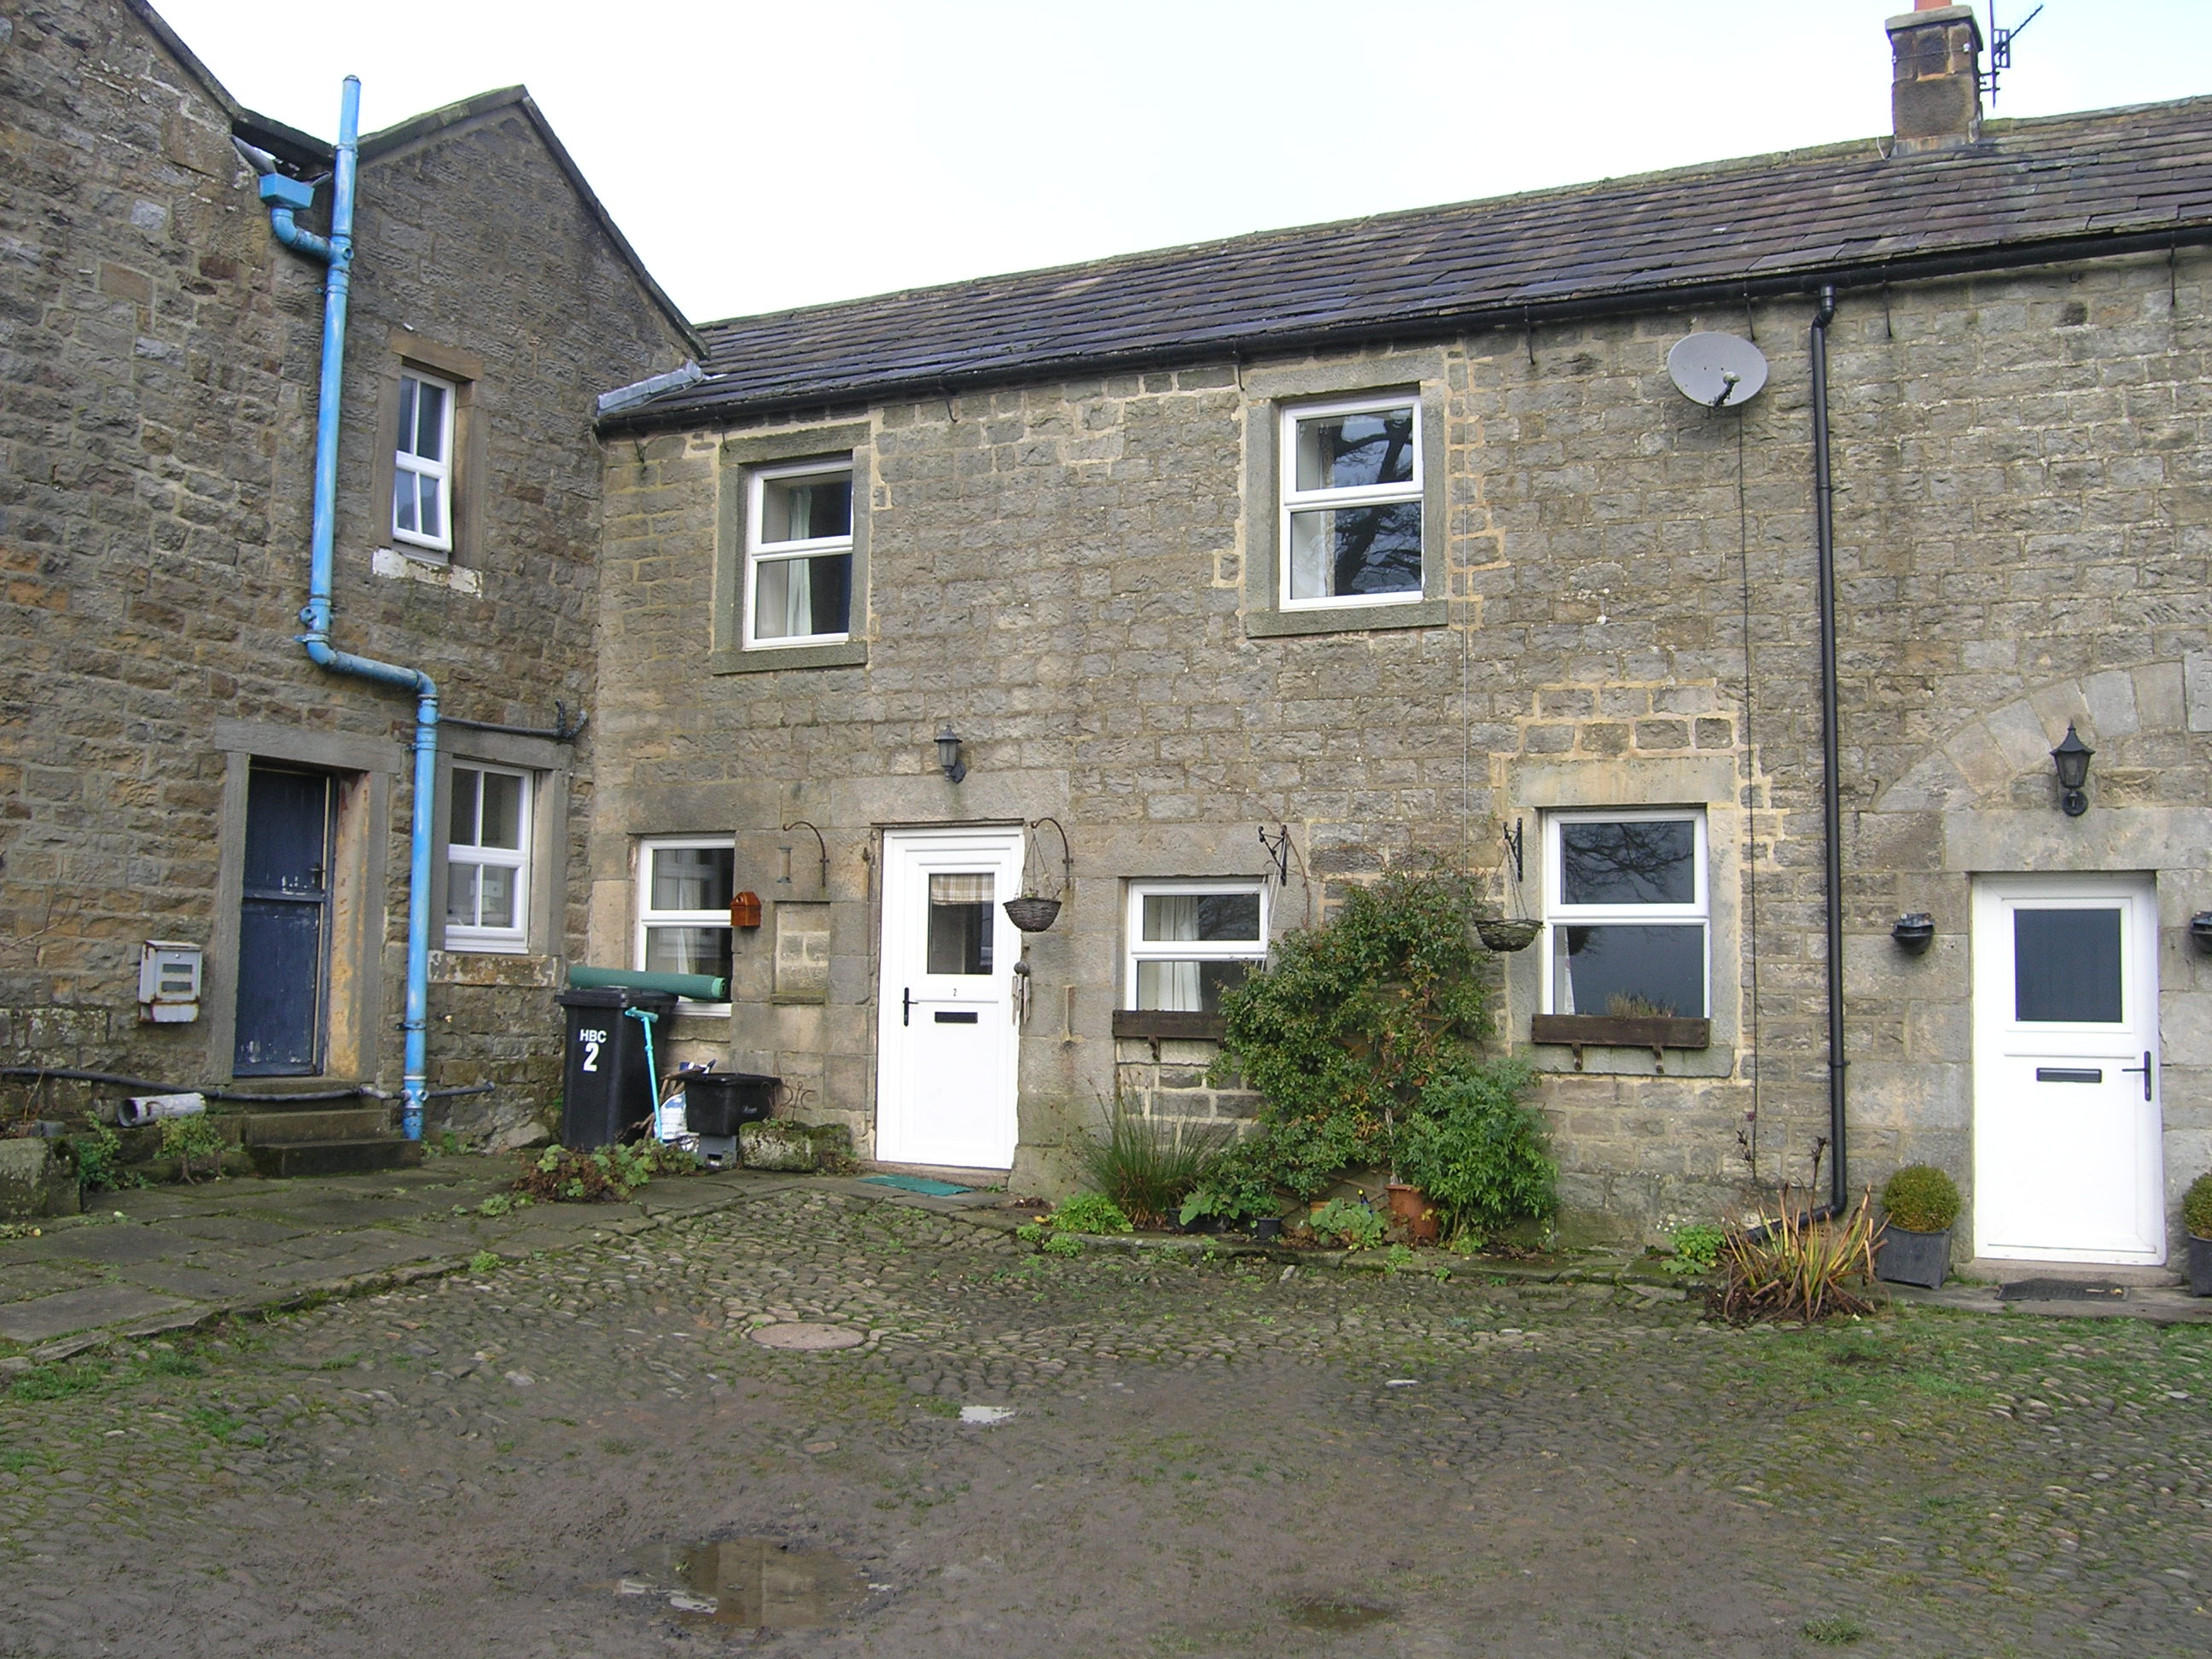 2 Dovenor Cottages, Middlesmoor